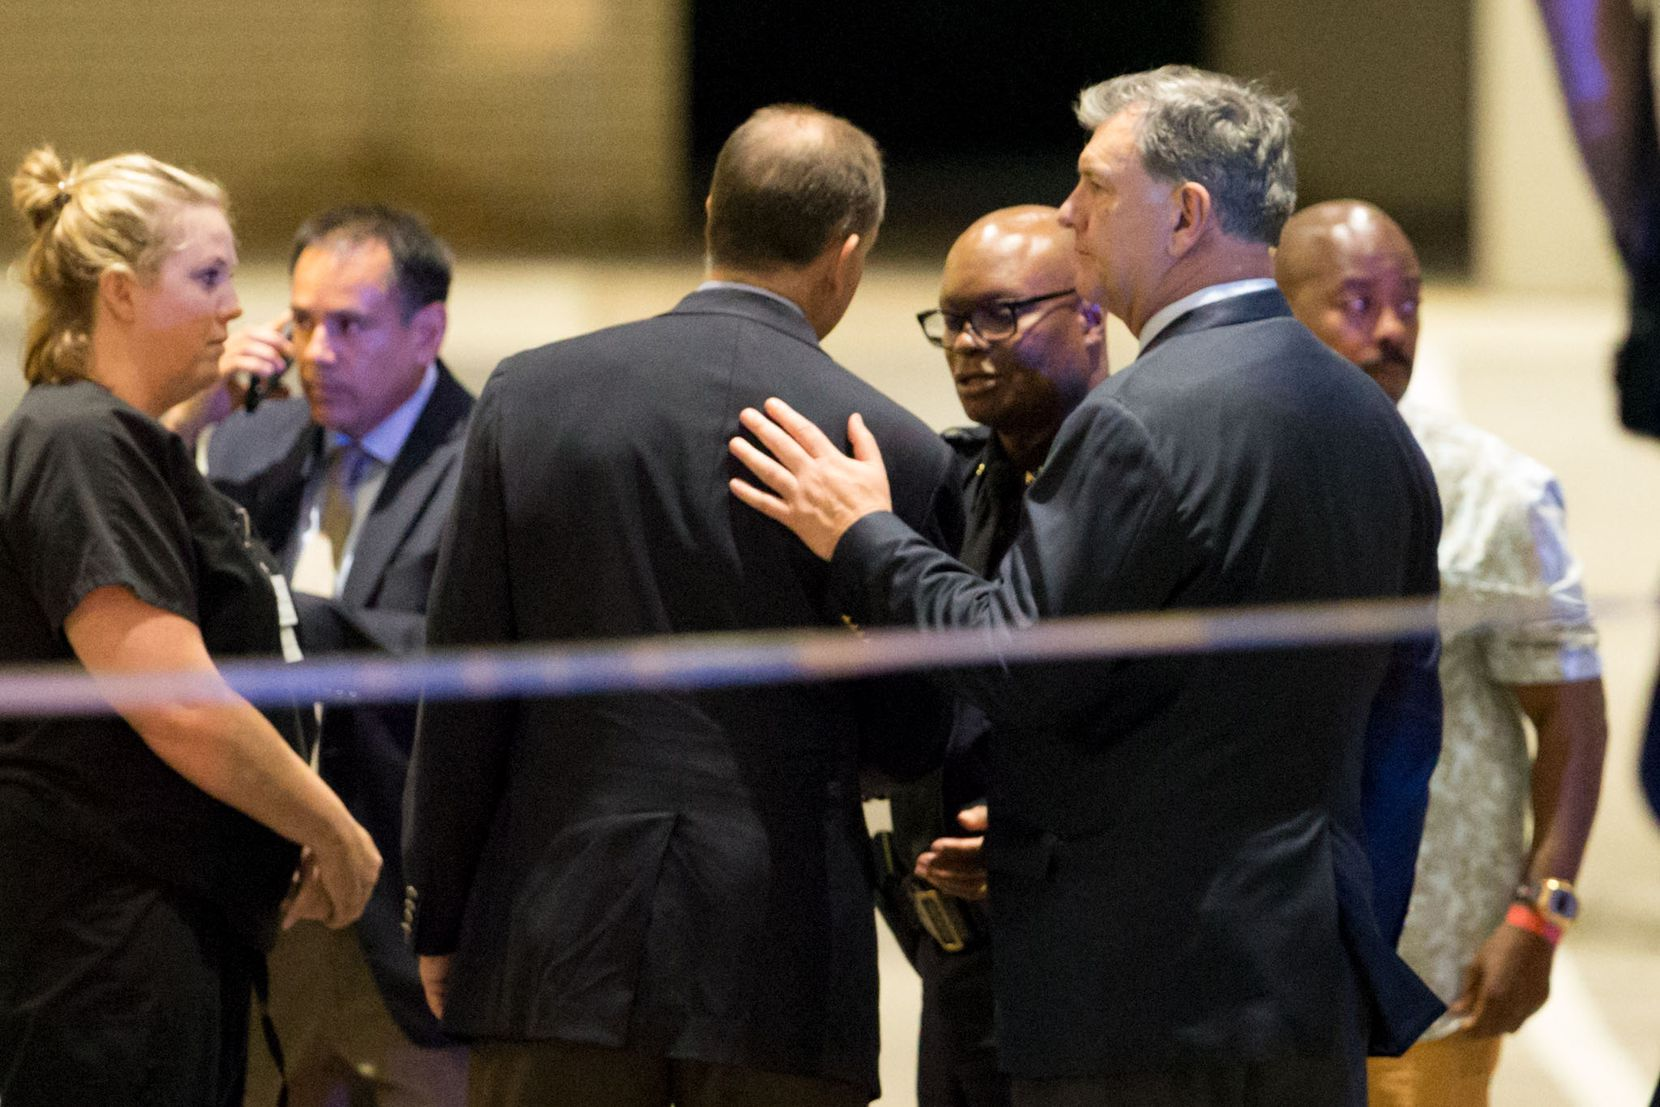 Mayor Mike Rawlings (right) and Police Chief David Brown joined others gathered outside the emergency room at Baylor University Medical Center in the early hours of July 8.